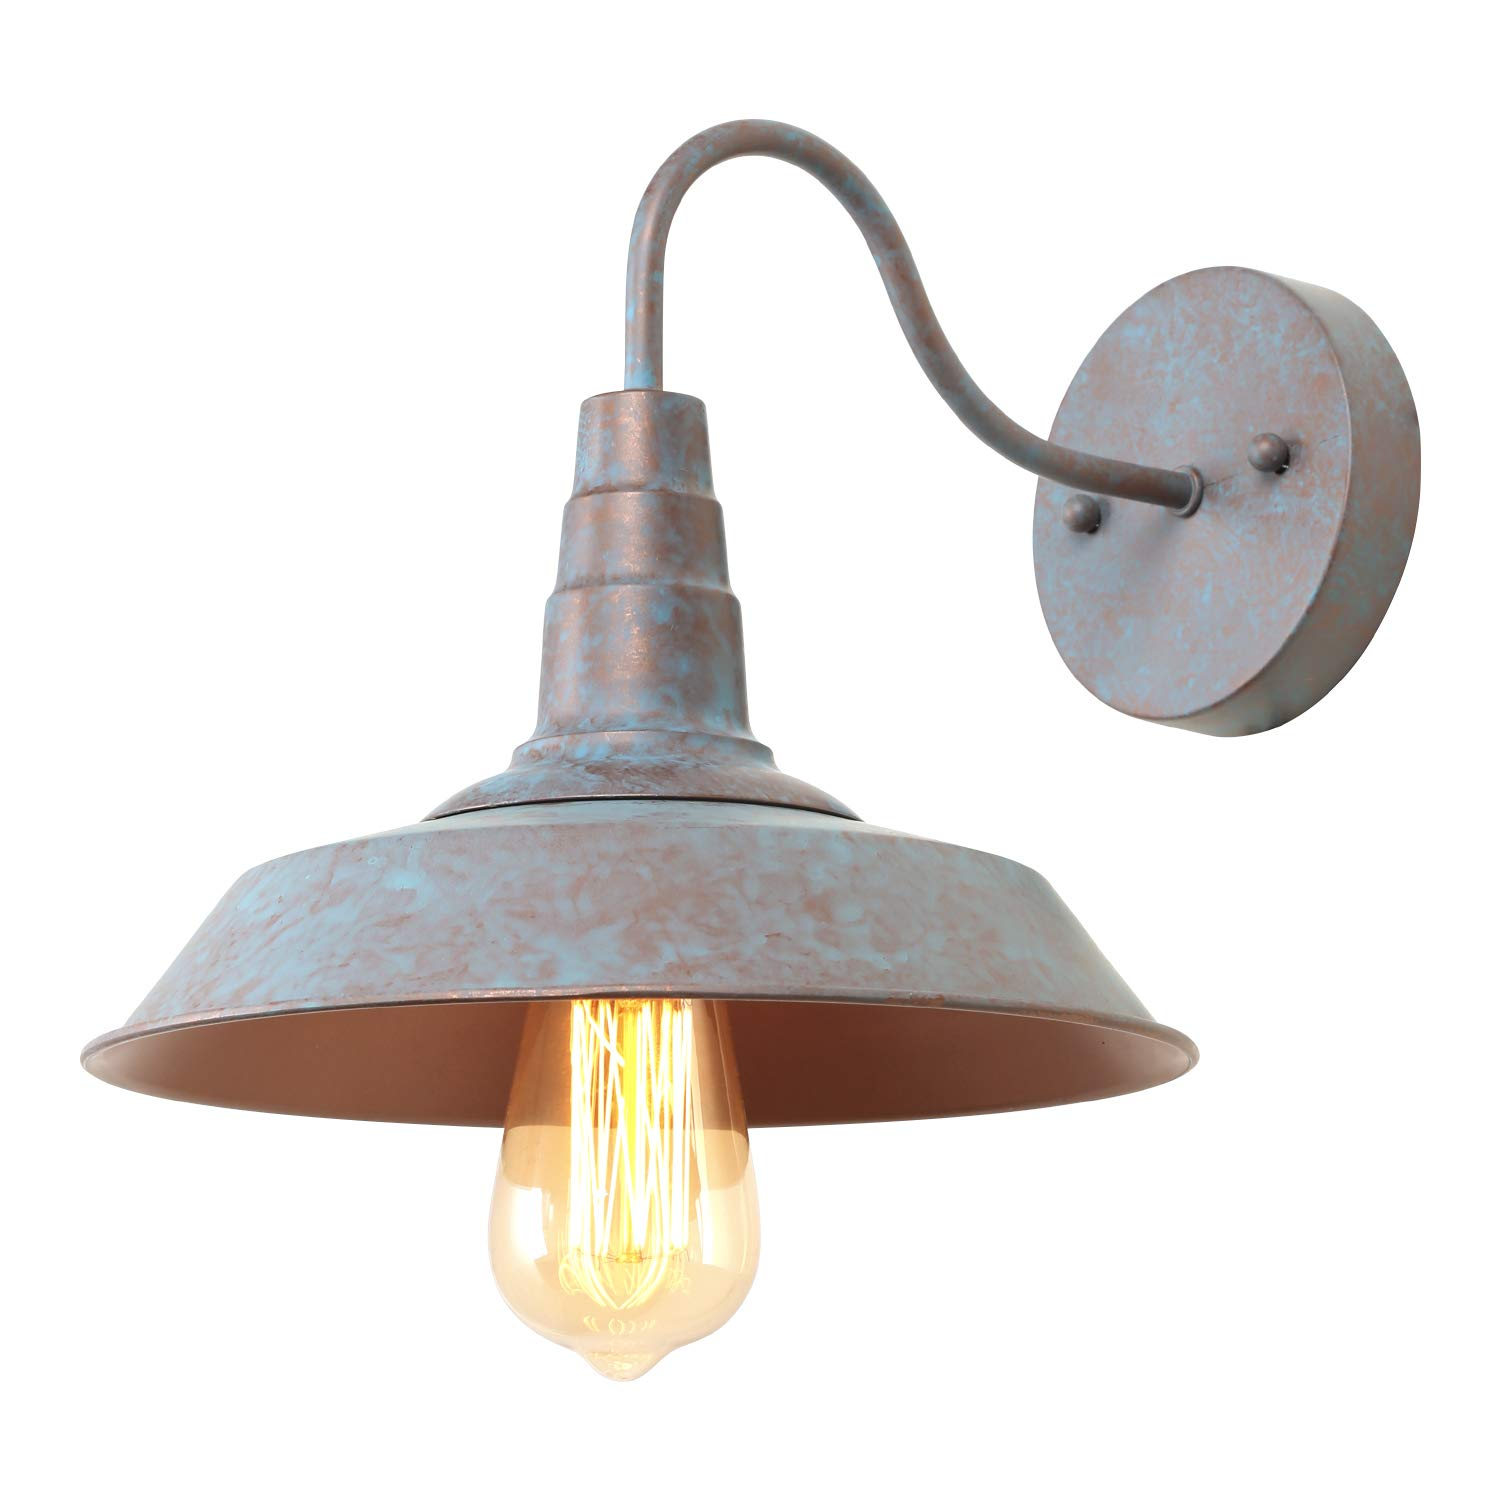 LALUZ 1-Light Wall Sconce Distressed Blue and Bronze Tiffany Gooseneck Barn Light Fixture, 10.2 inches